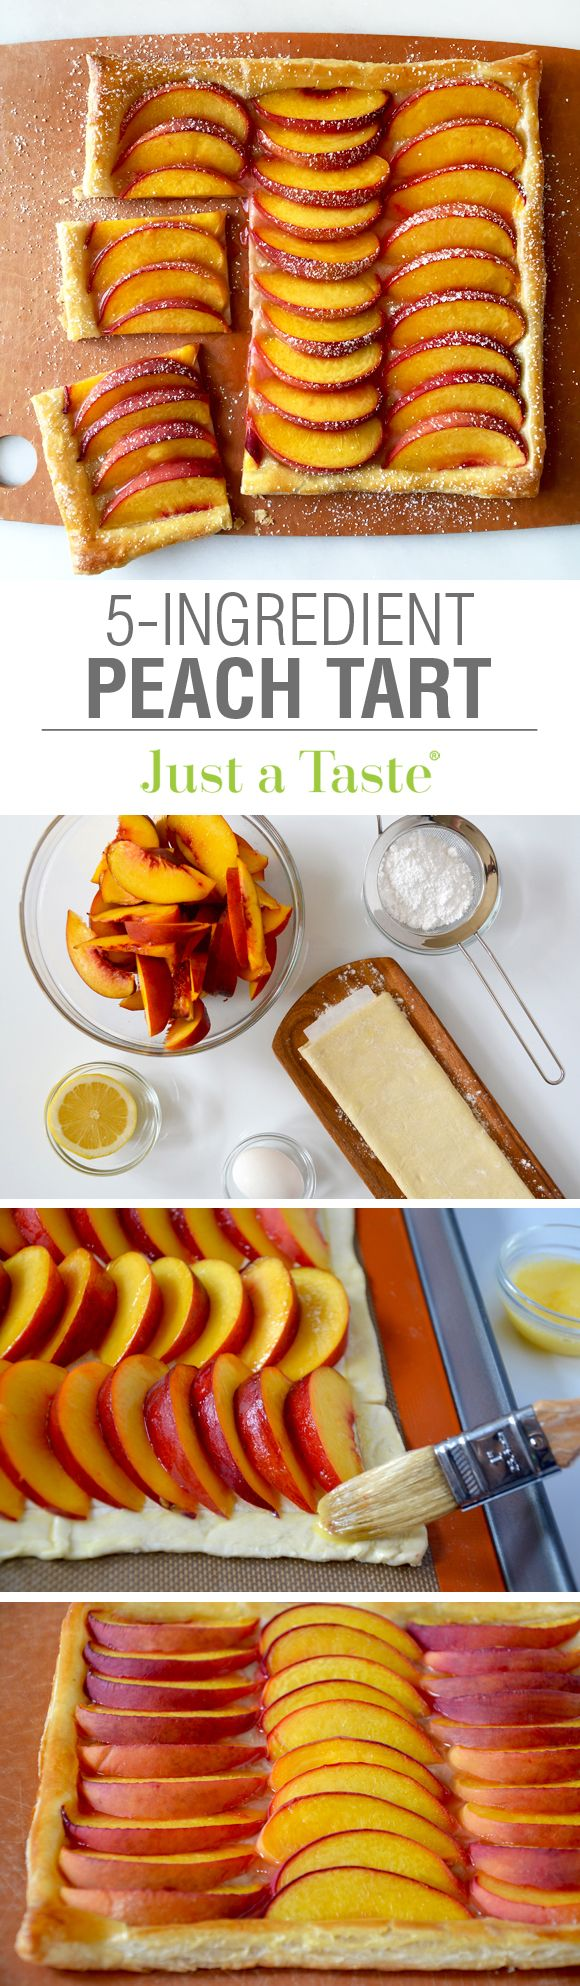 5-Ingredient Peach Tart #recipe via justataste.com